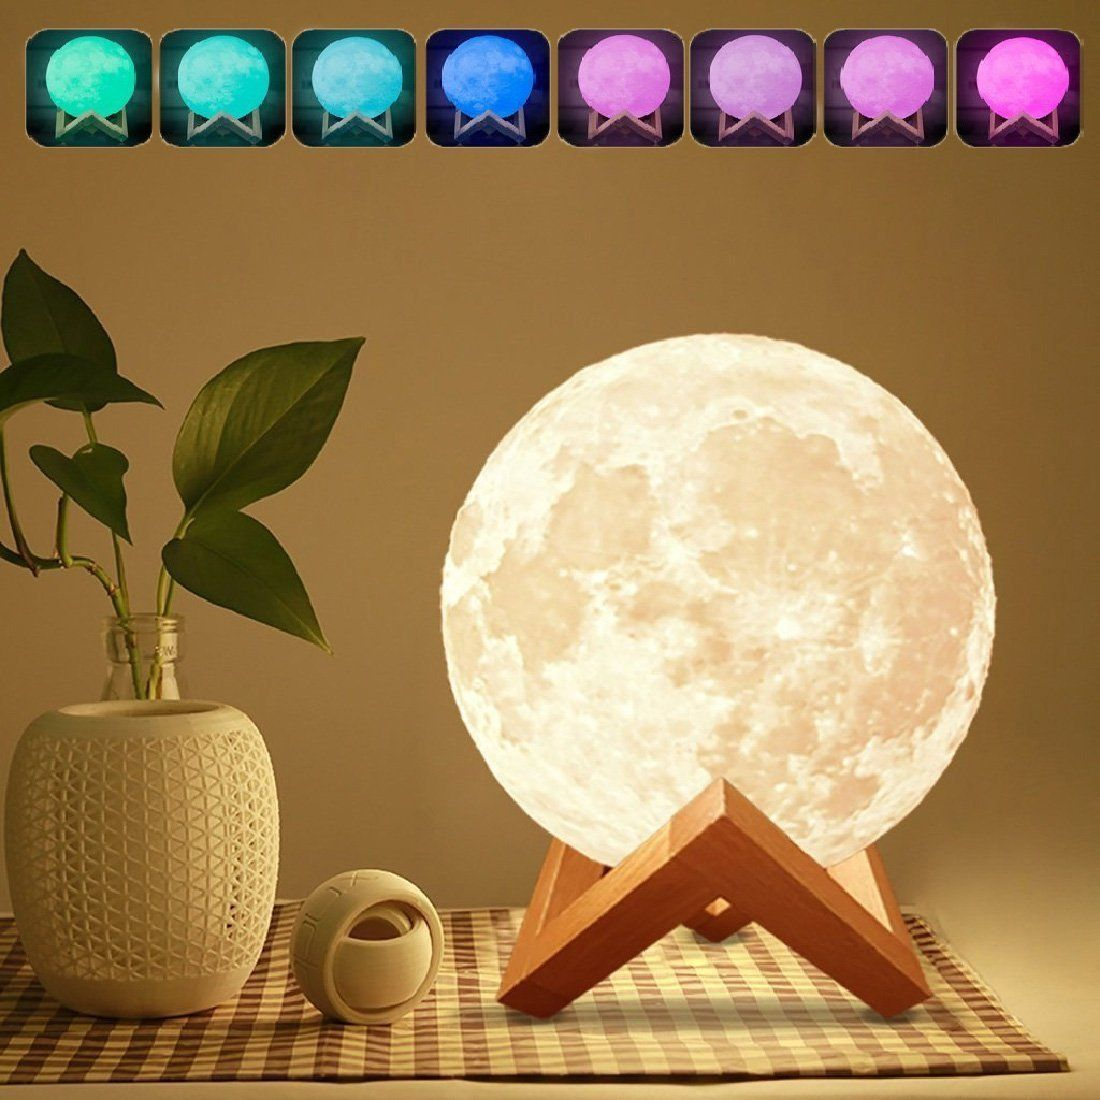 Amazon Com 10 Moon Lamp Genuine Moon Light Lamps 10 3d Printed Moon Light With Stand The 3d Moon Lamp With Led 16 Colors Moon Light Lamp Lamp Lamp Light